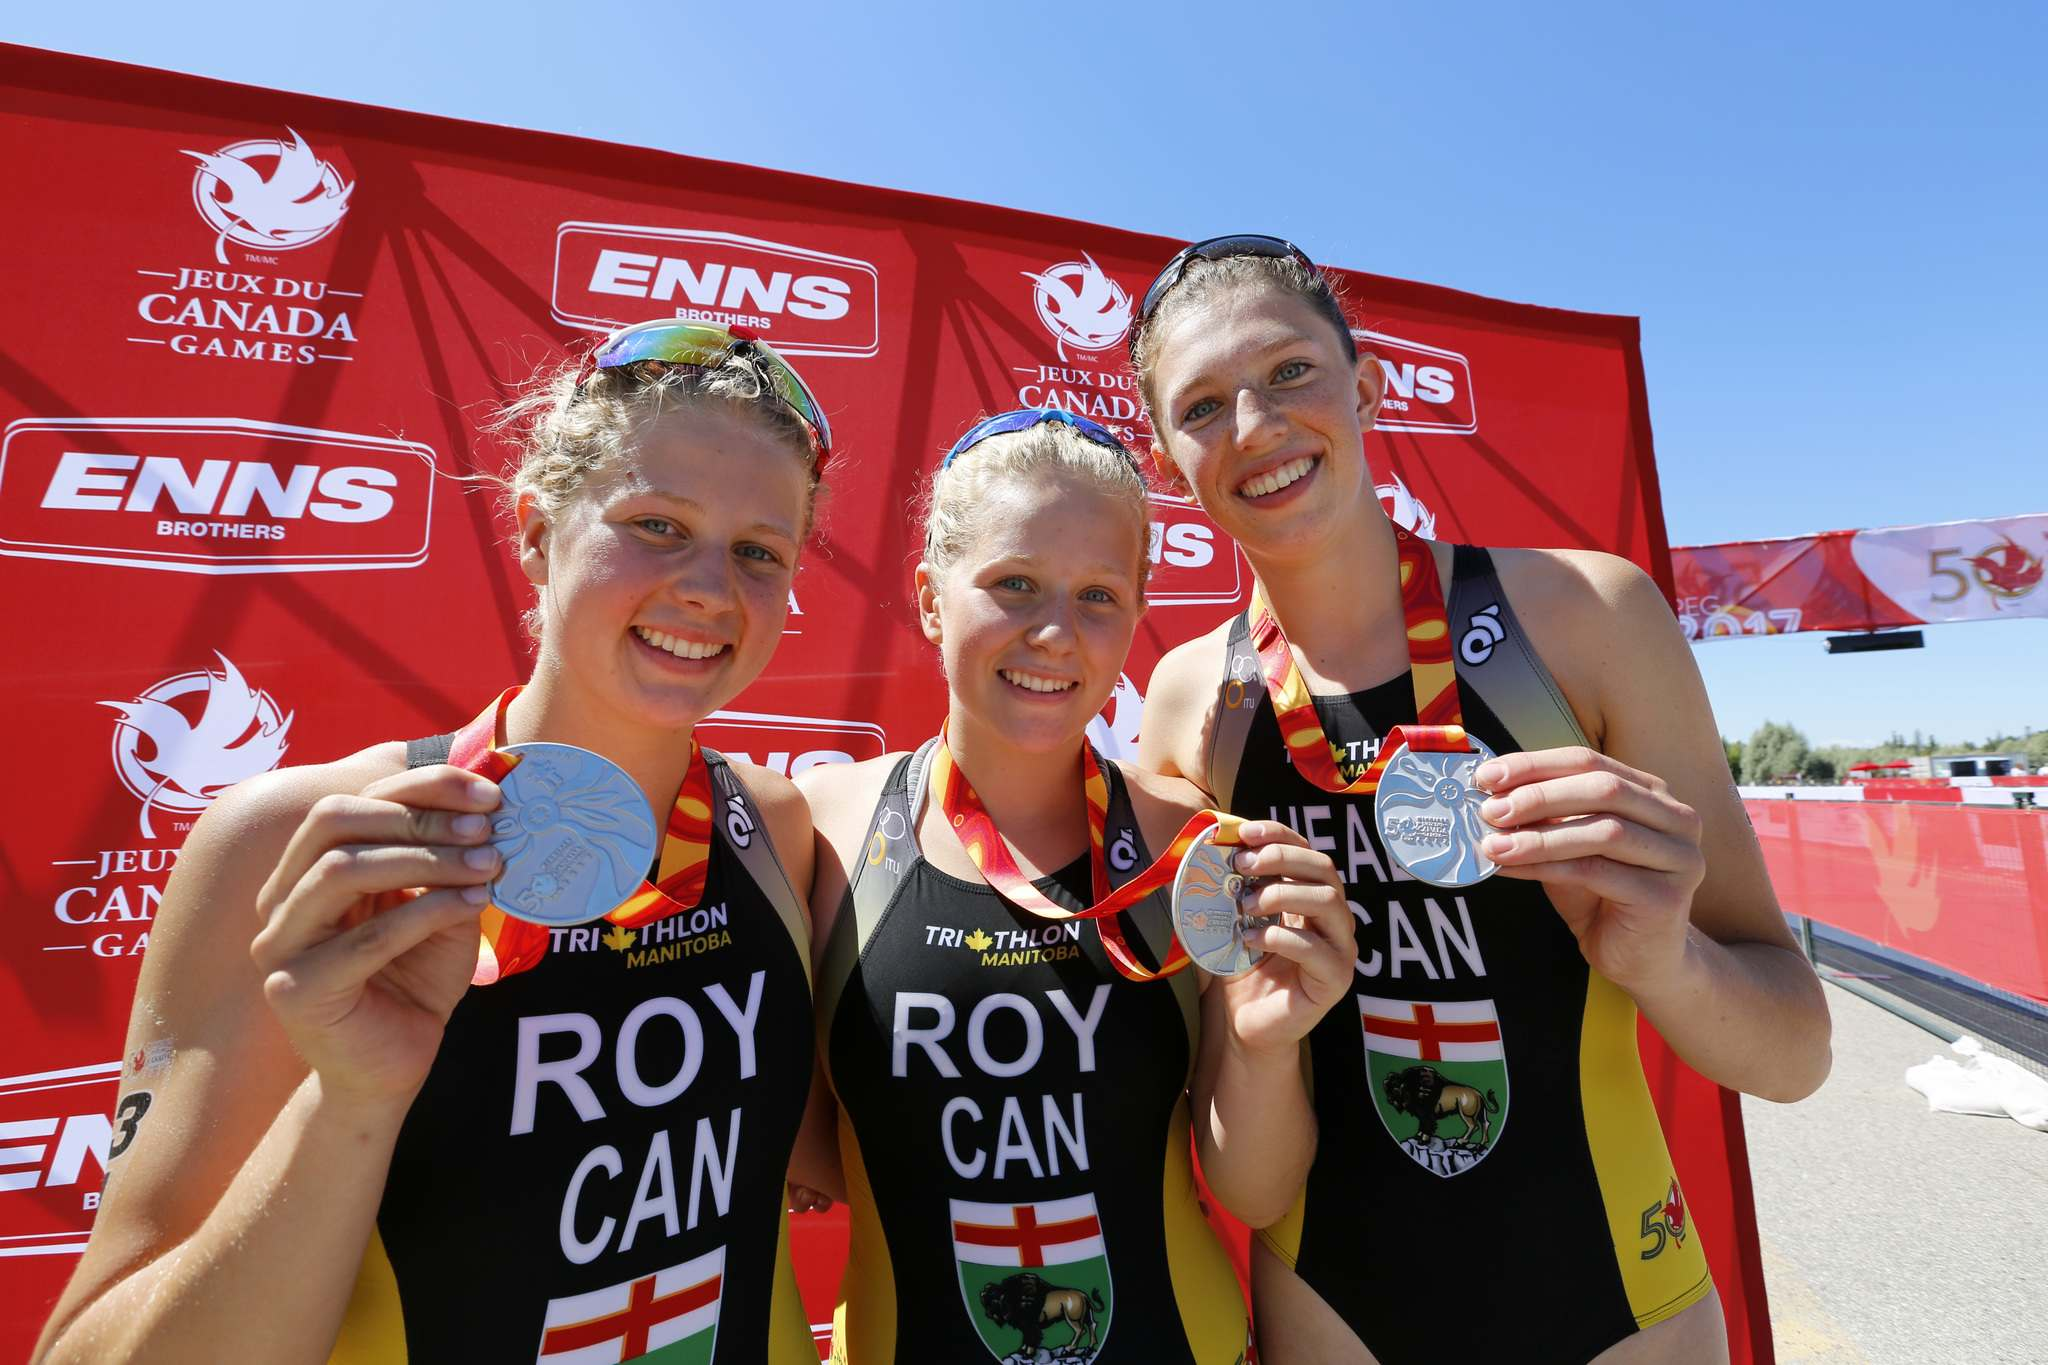 JUSTIN SAMANSKI-LANGILLE / WINNIPEG FREE PRESS</p><p>Team Manitoba's women's triathlon relay team Kyla Roy, Caitlyn Roy and Claire Healey pose with their silver medals Thursday at Birds Hill Provincial Park.</p>